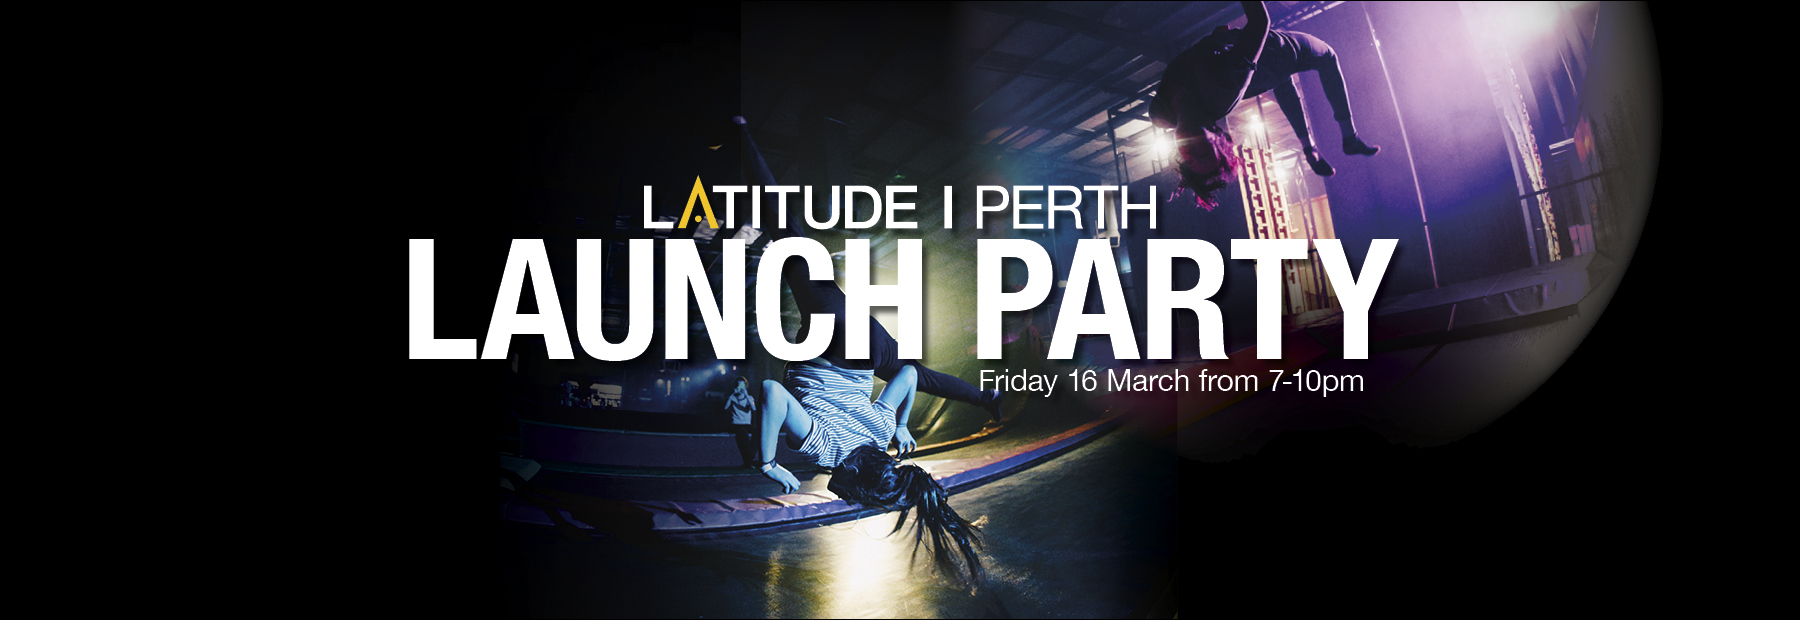 Perth Launch Party